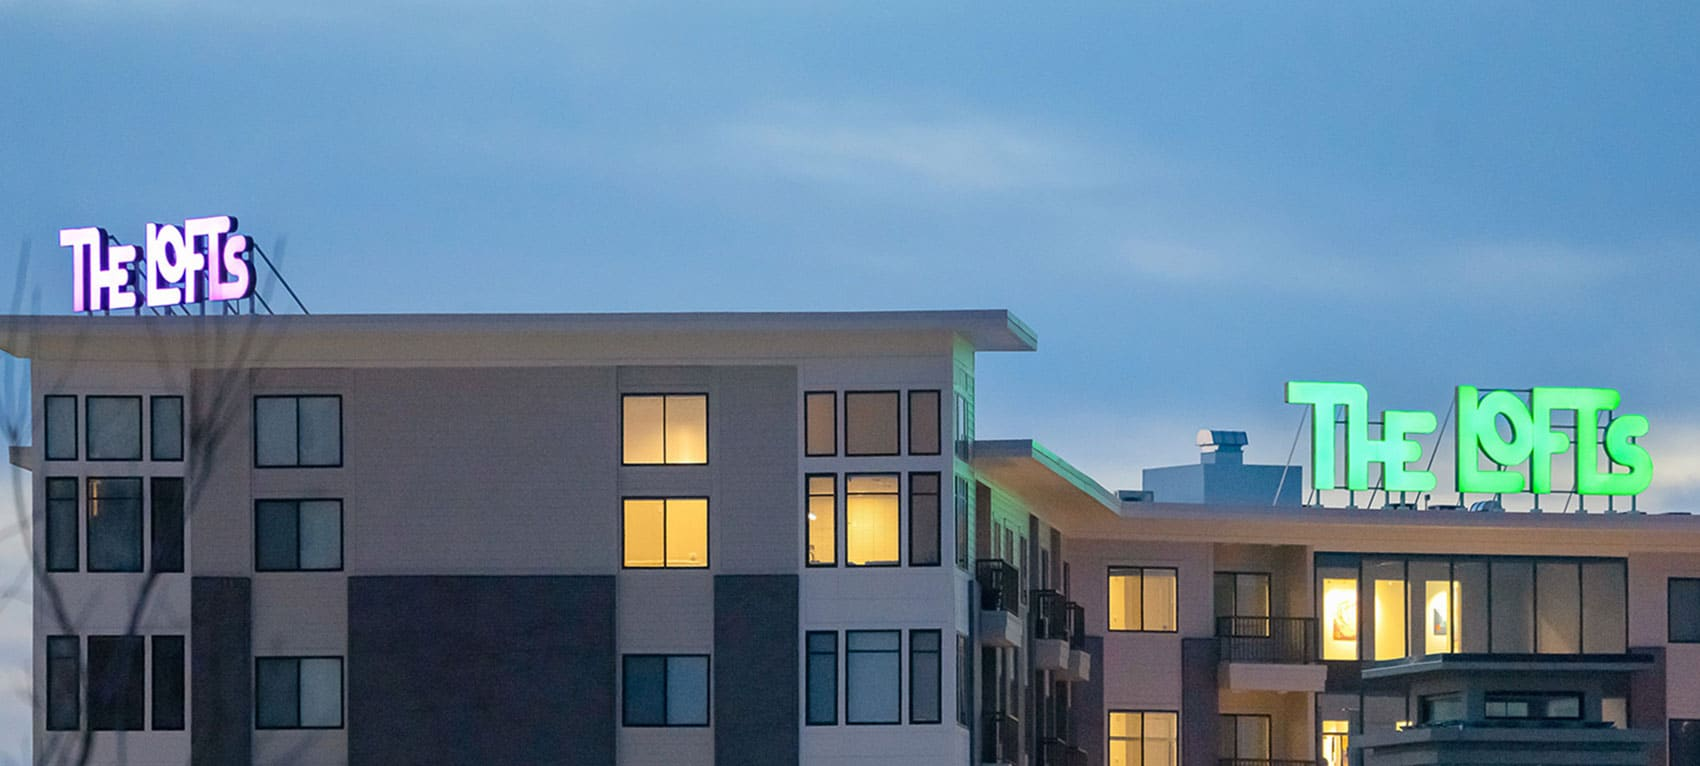 The glowing rooftop beacons are engineered to withstand 110-mph winds.